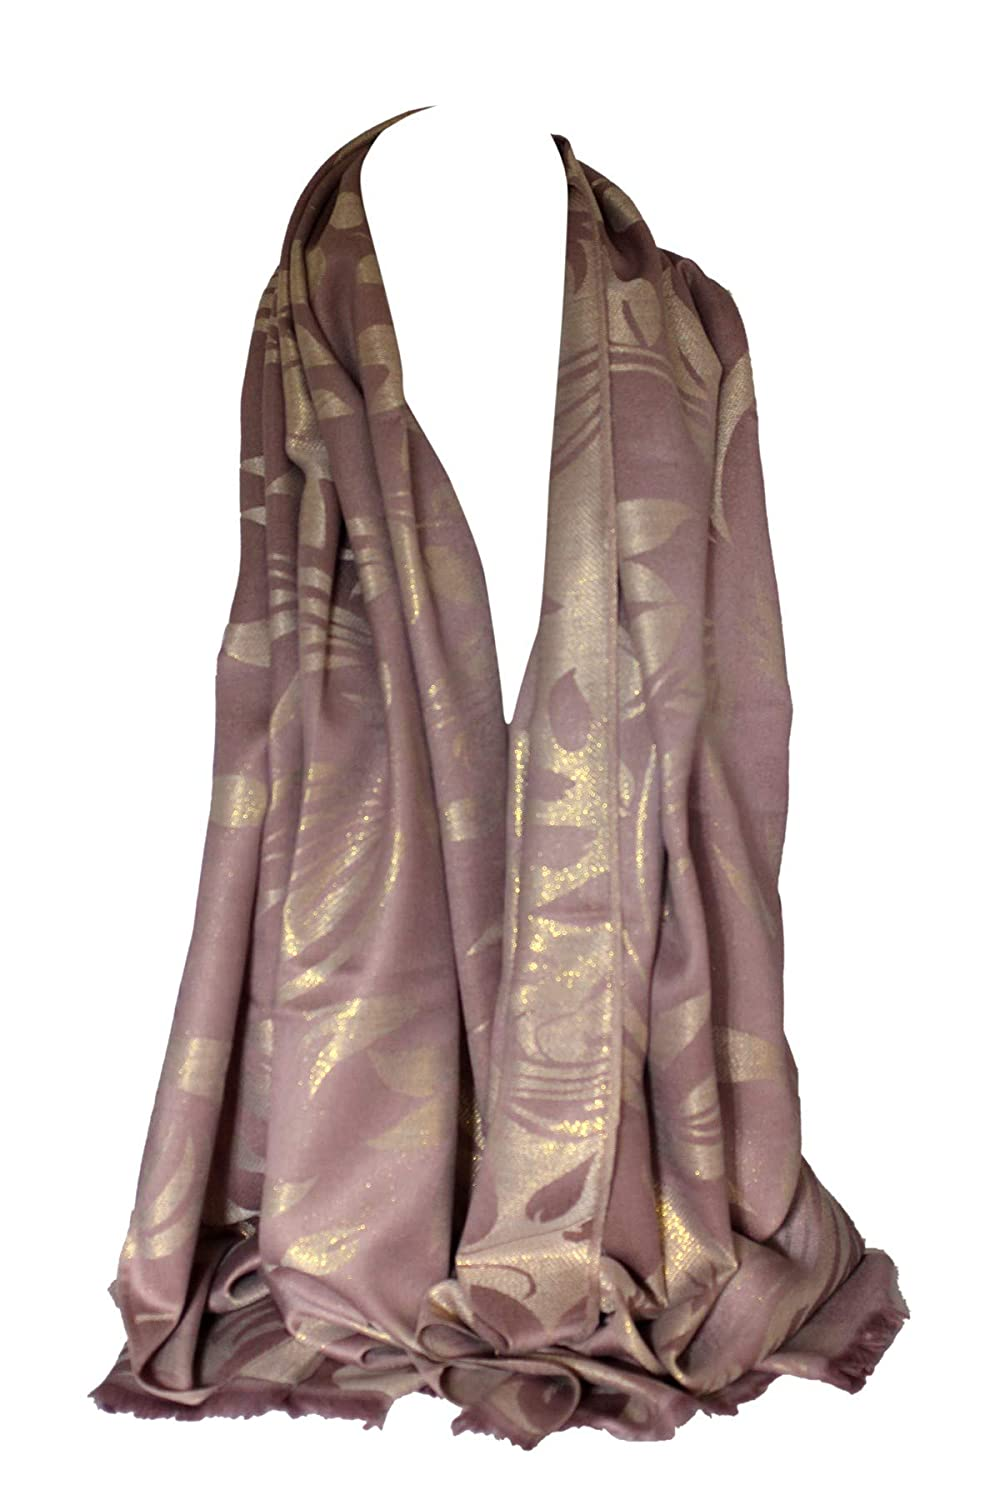 Two Sided Reversible Shimmer Foil Print Spring Floral Scarf Shawl Wrap Stole